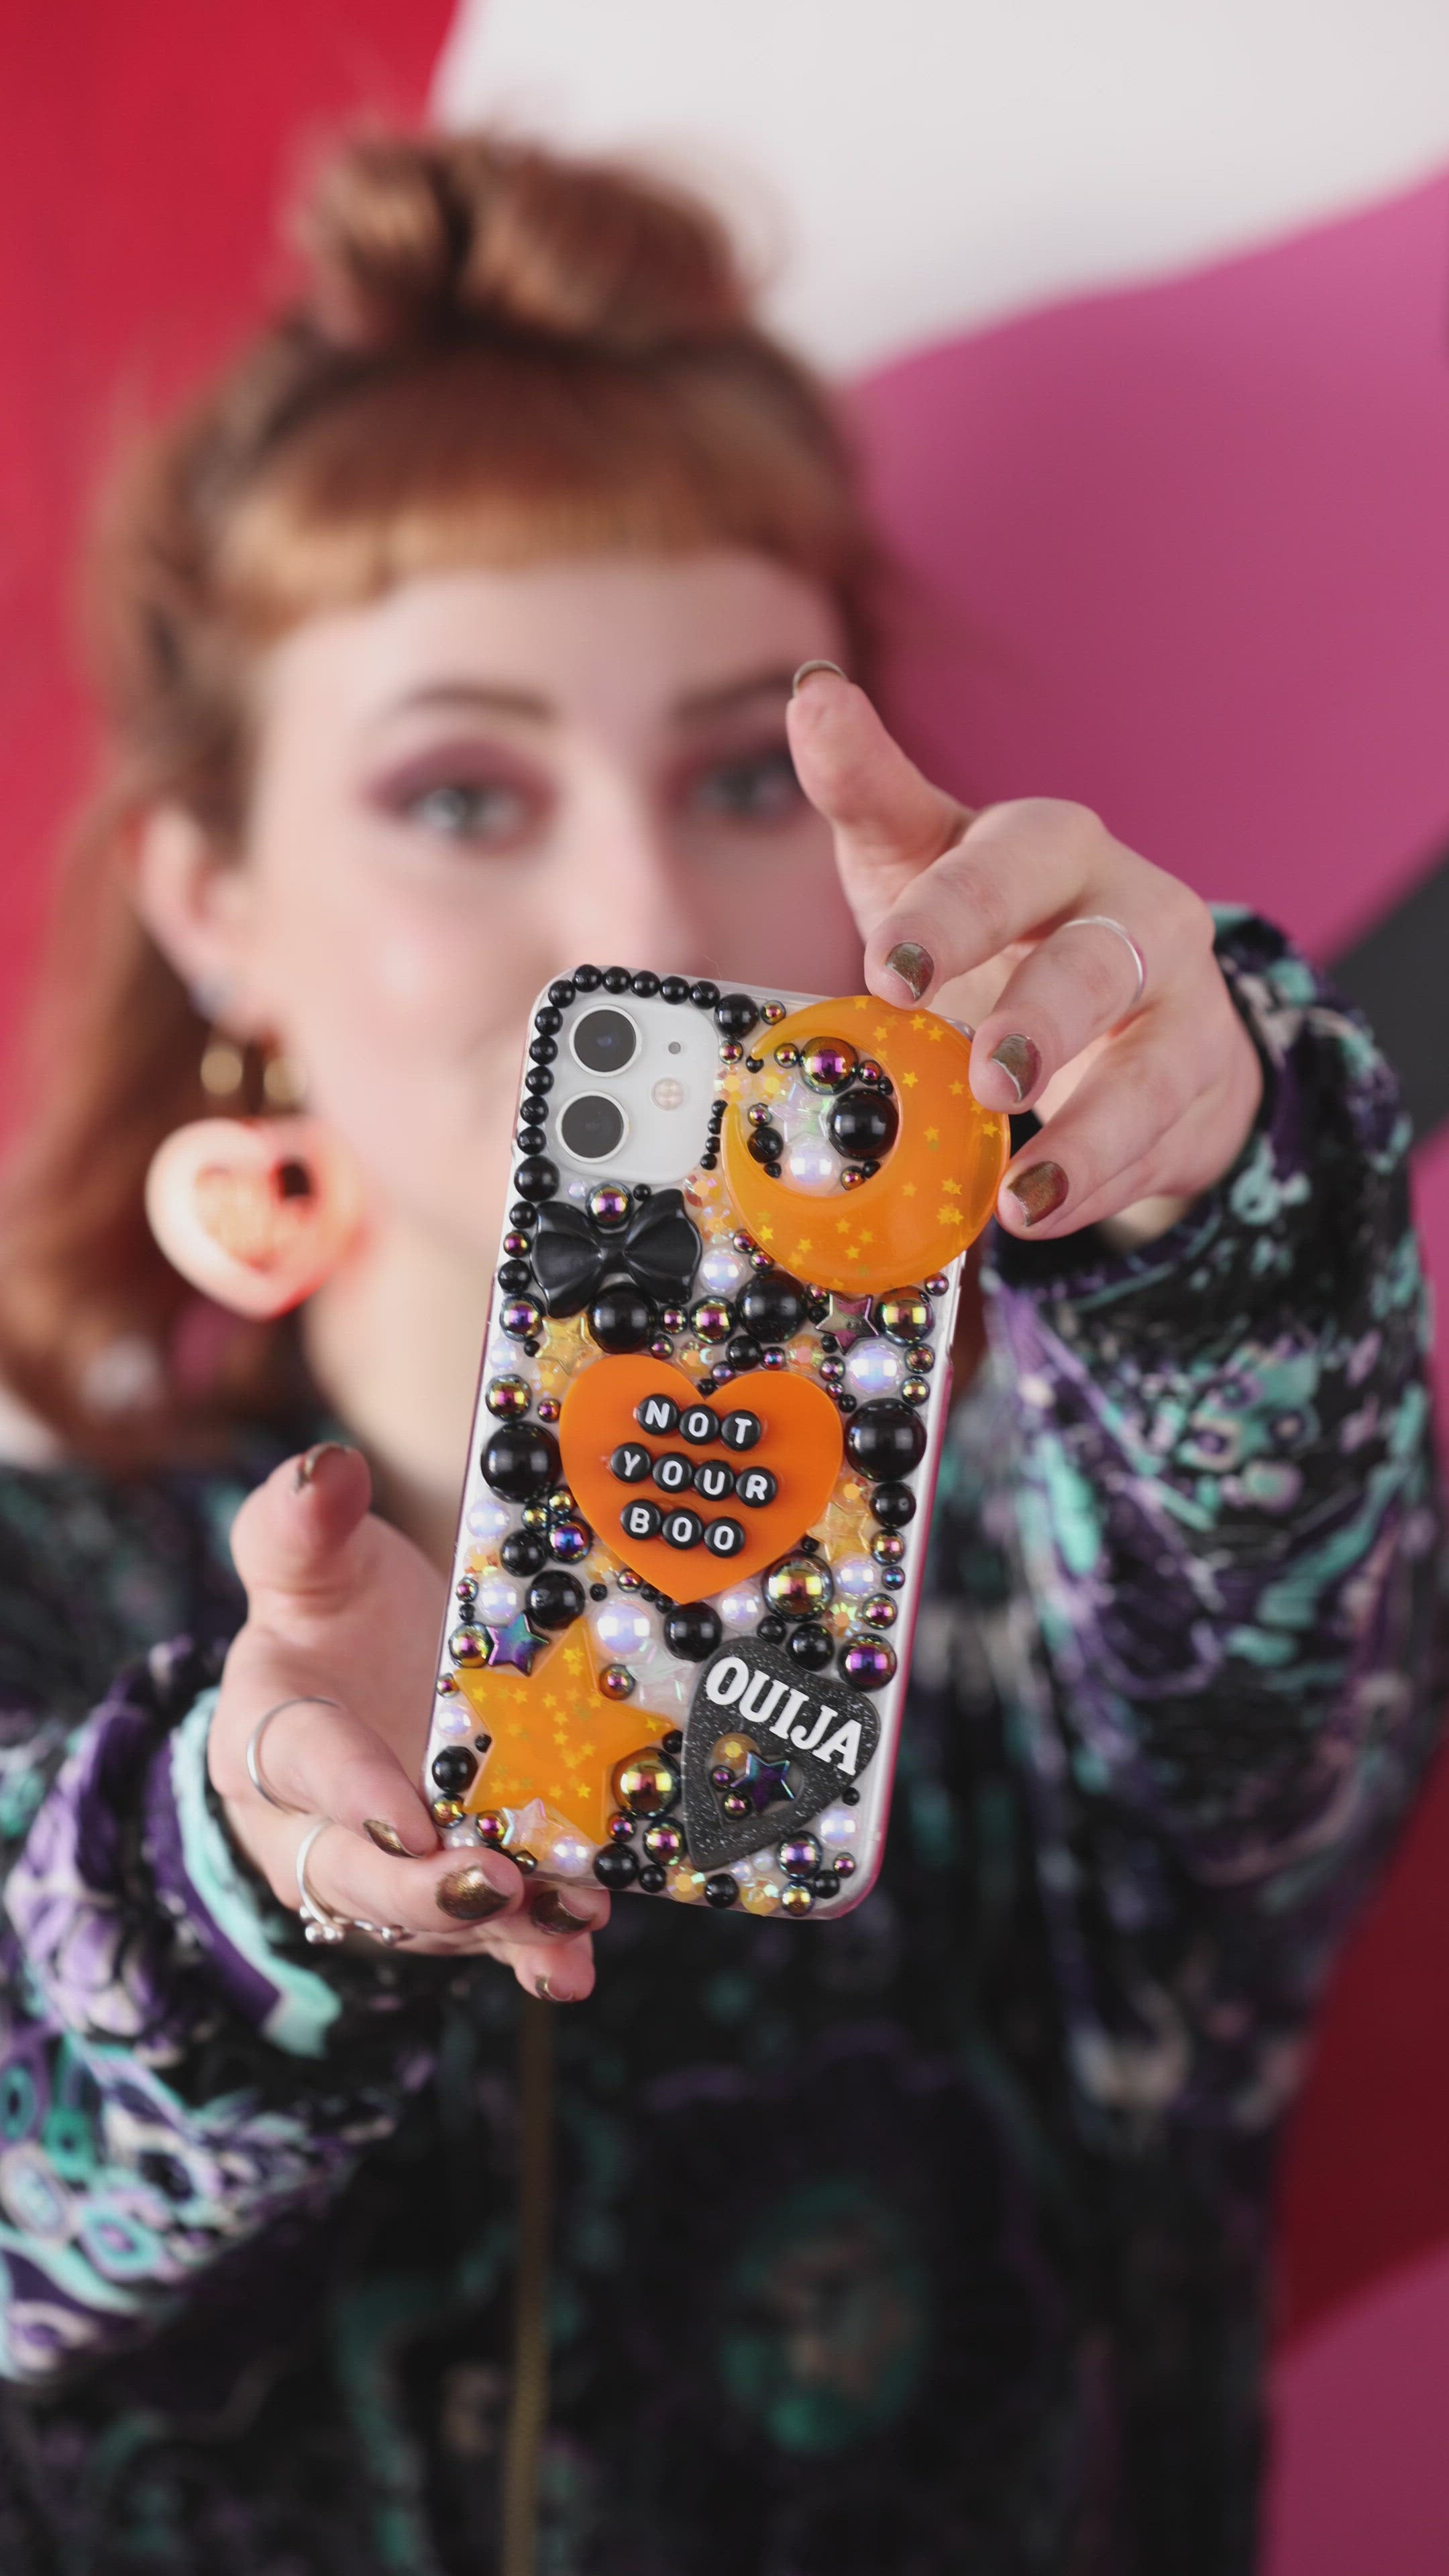 Not Your Boo Phone Case